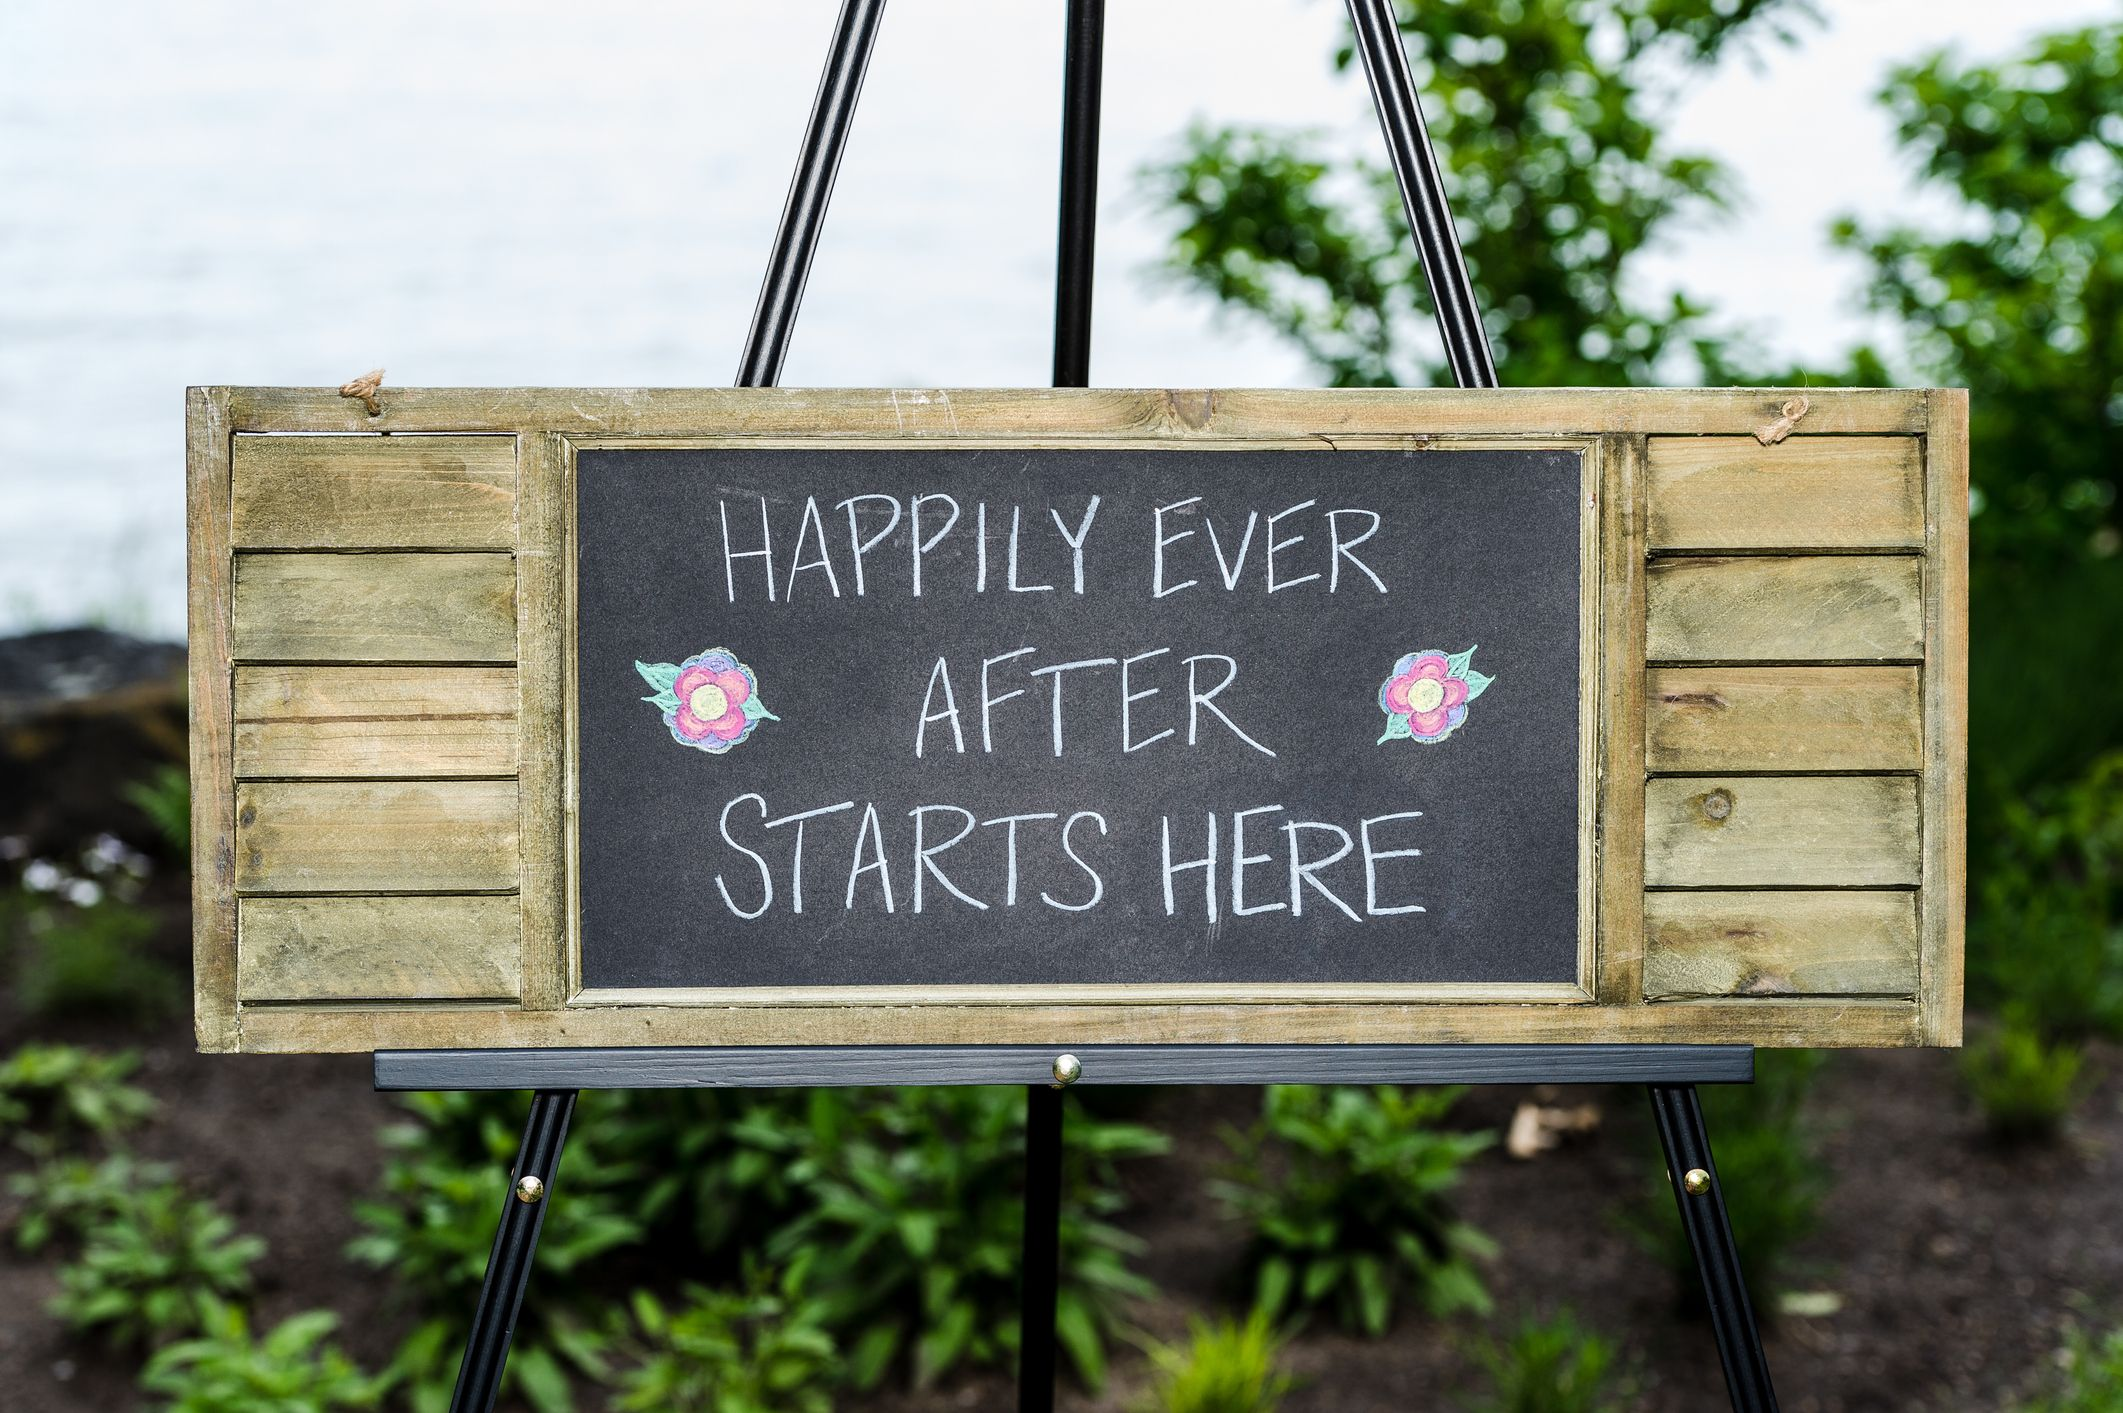 Taming the Flood of Contradictions in a Wedding